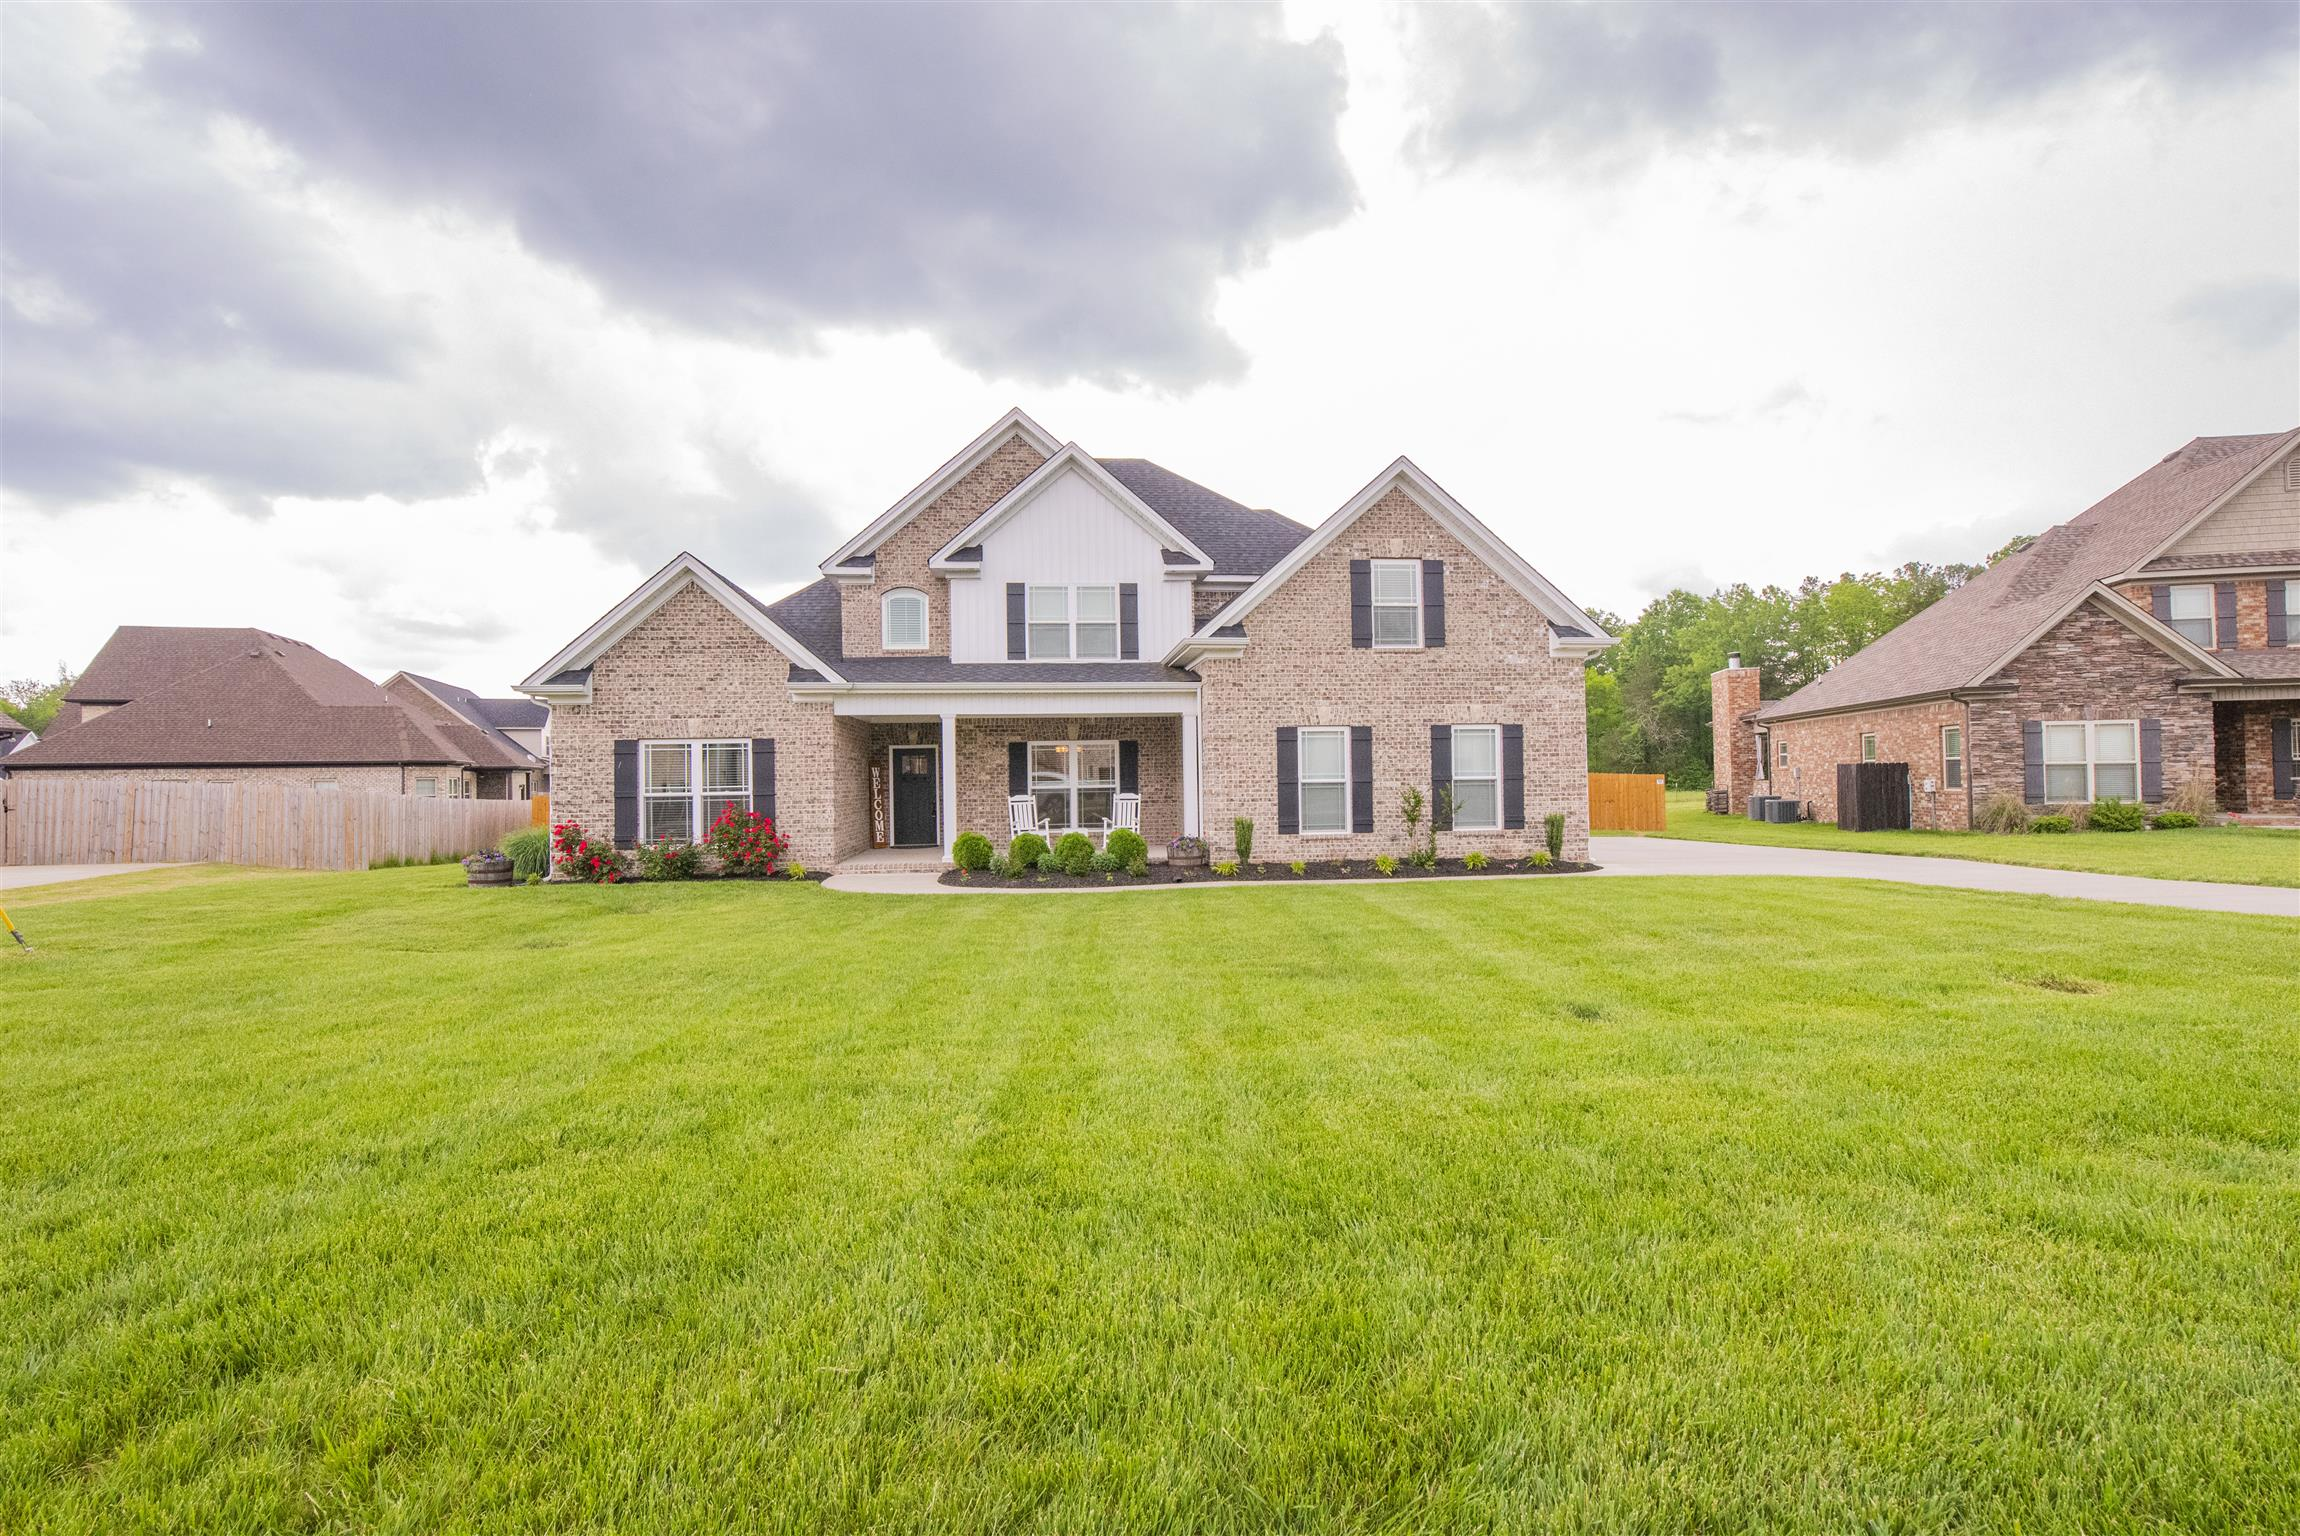 8009 Shelly Plum Dr, Murfreesboro, Tennessee